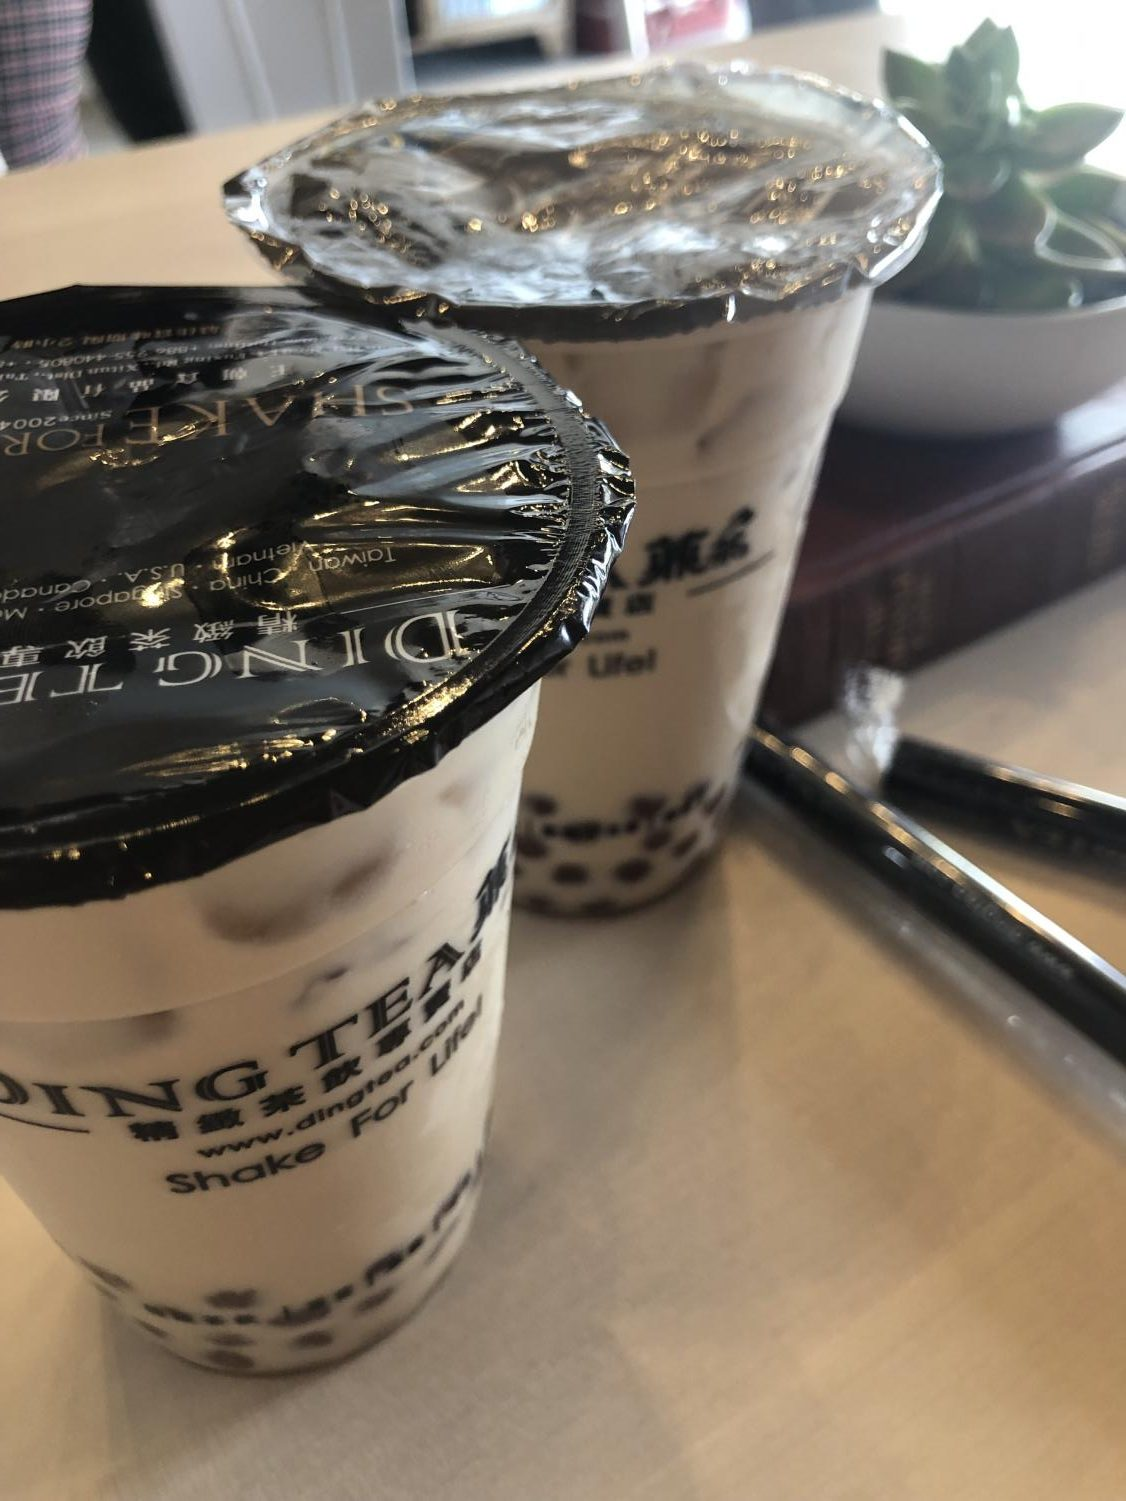 Shown above is an image of Ding Tea's delicious classic milk tea with boba.